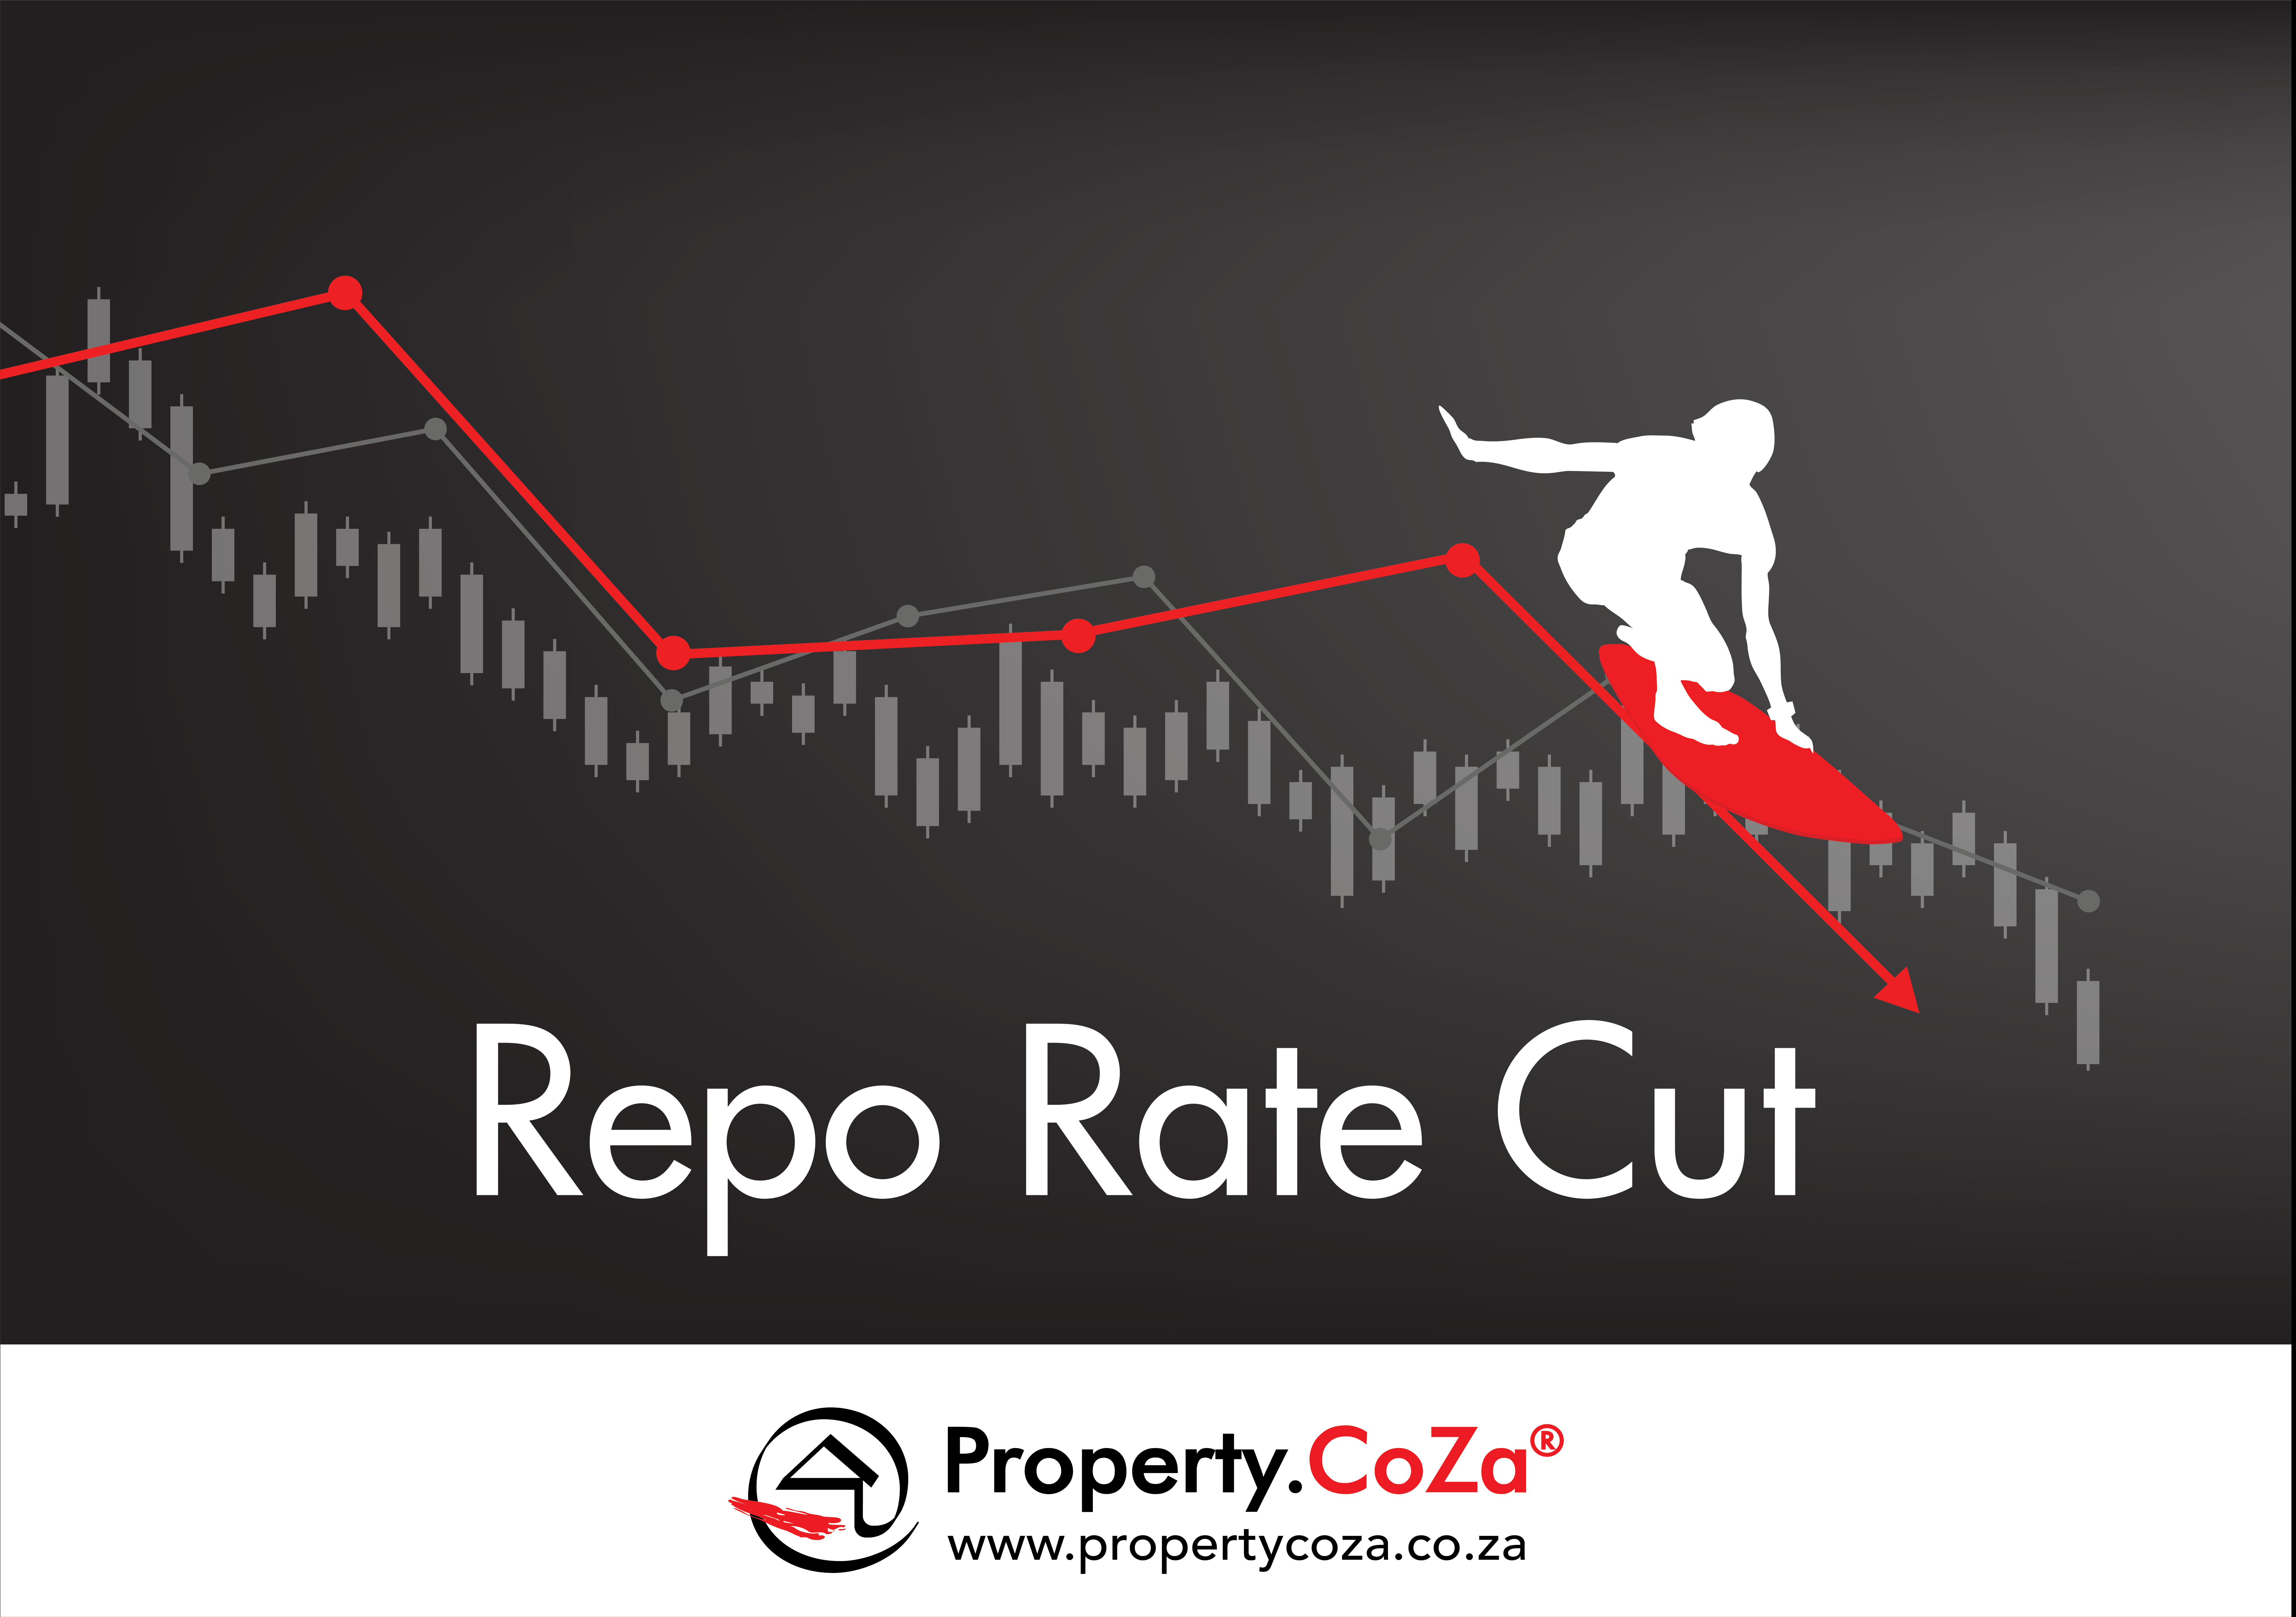 Another Rate Cut to Ease the Economy